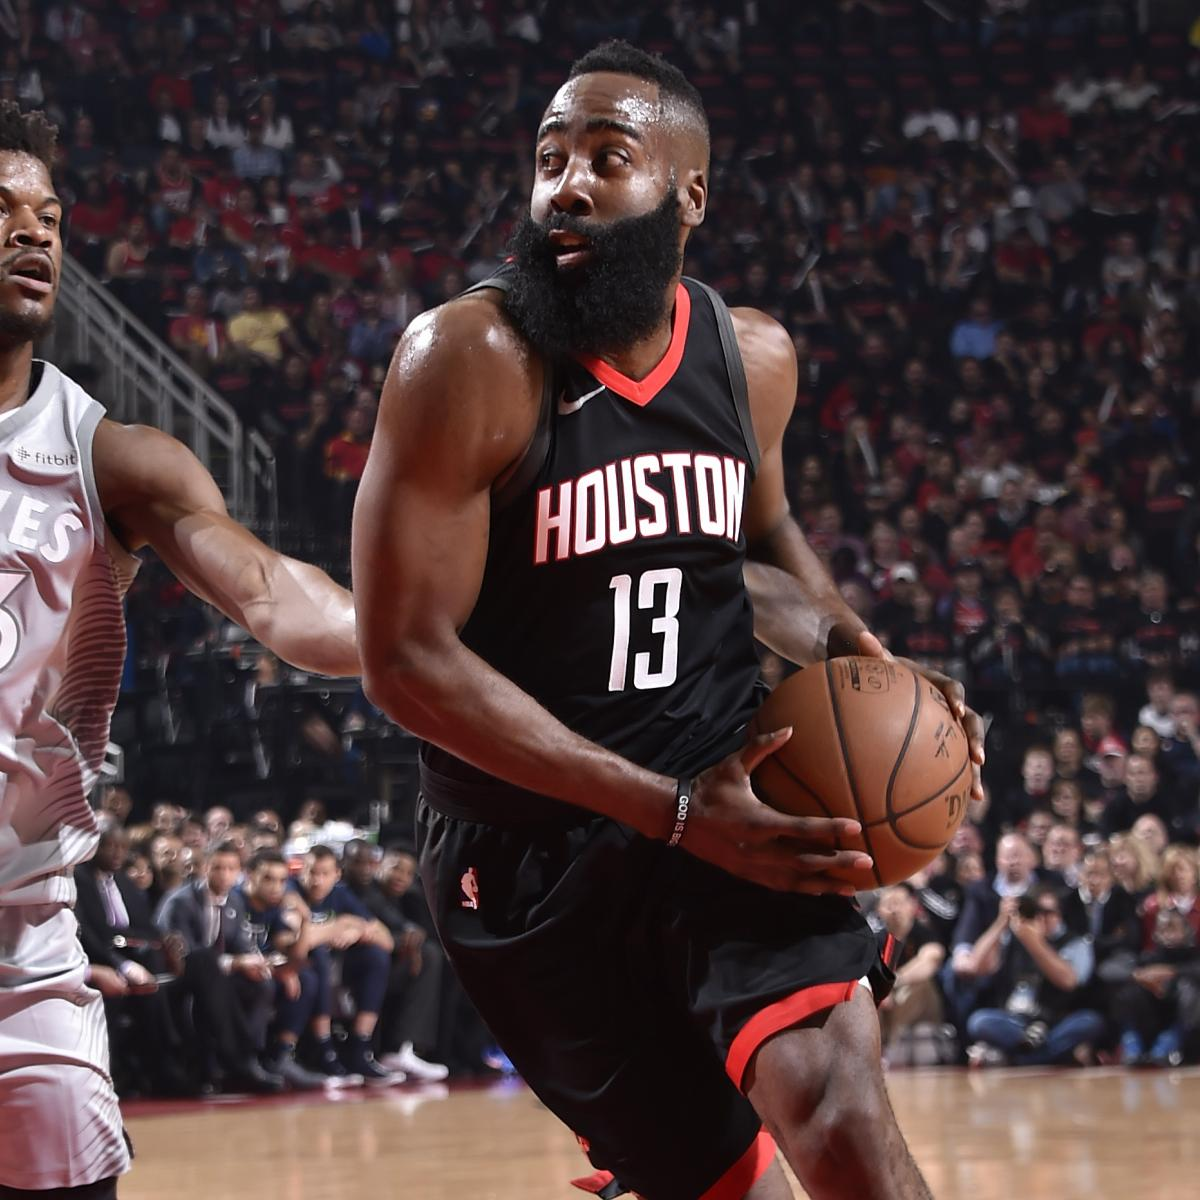 James Harden Latest News: JAMES HARDEN ERUPTS FOR 44 POINTS AS ROCKETS BEAT JIMMY